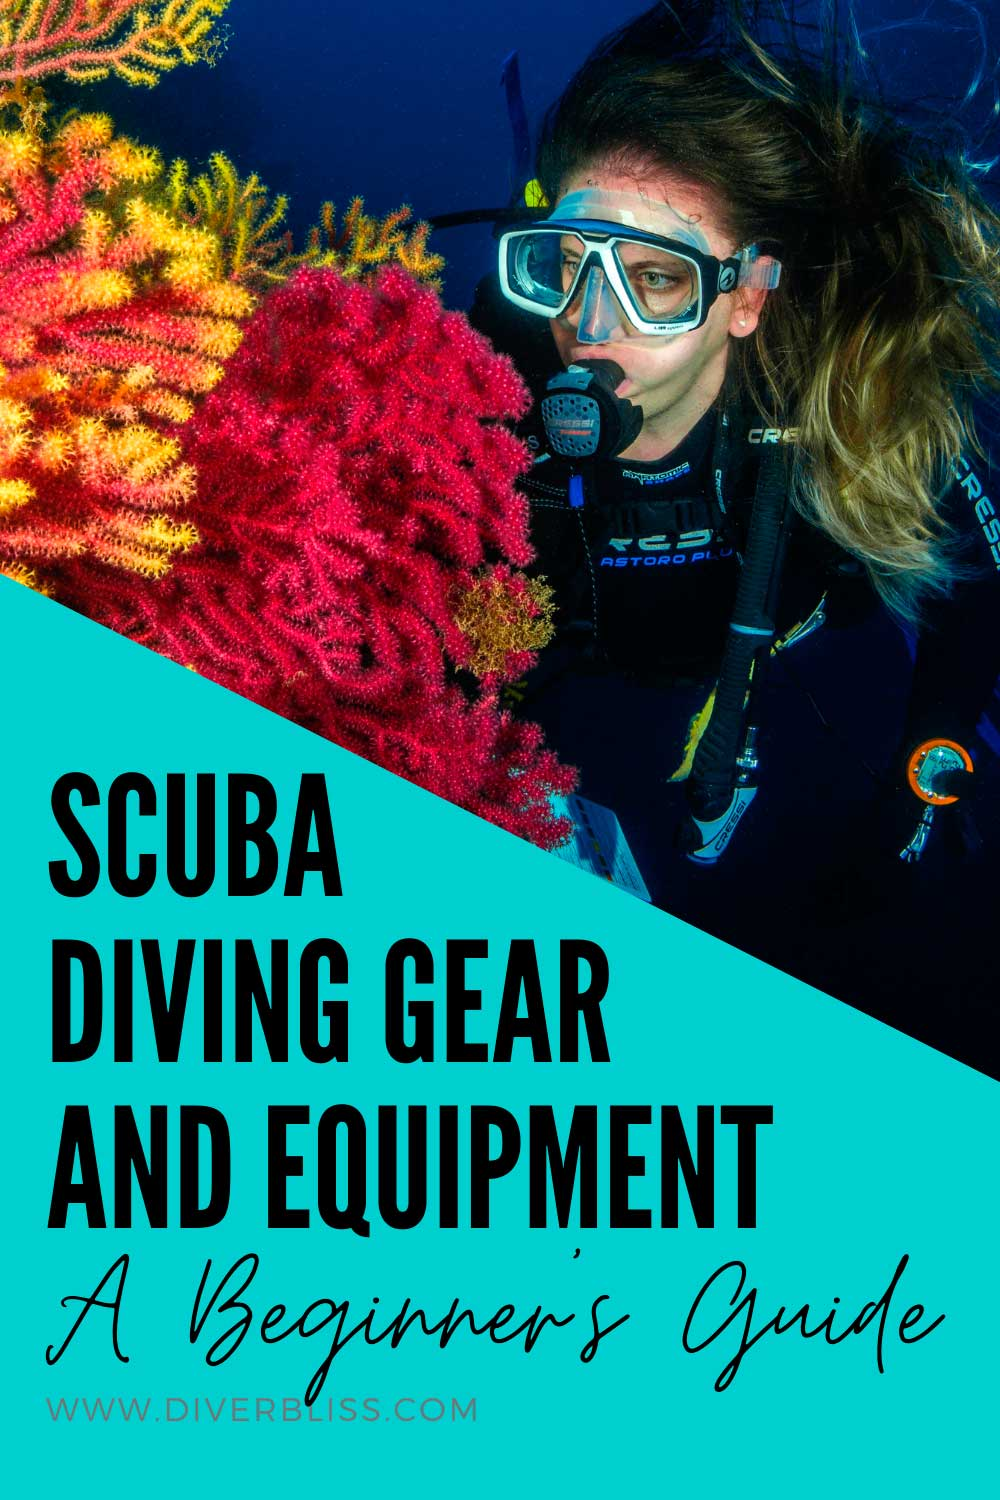 a beginner's guide to scuba diving gear and equipment: